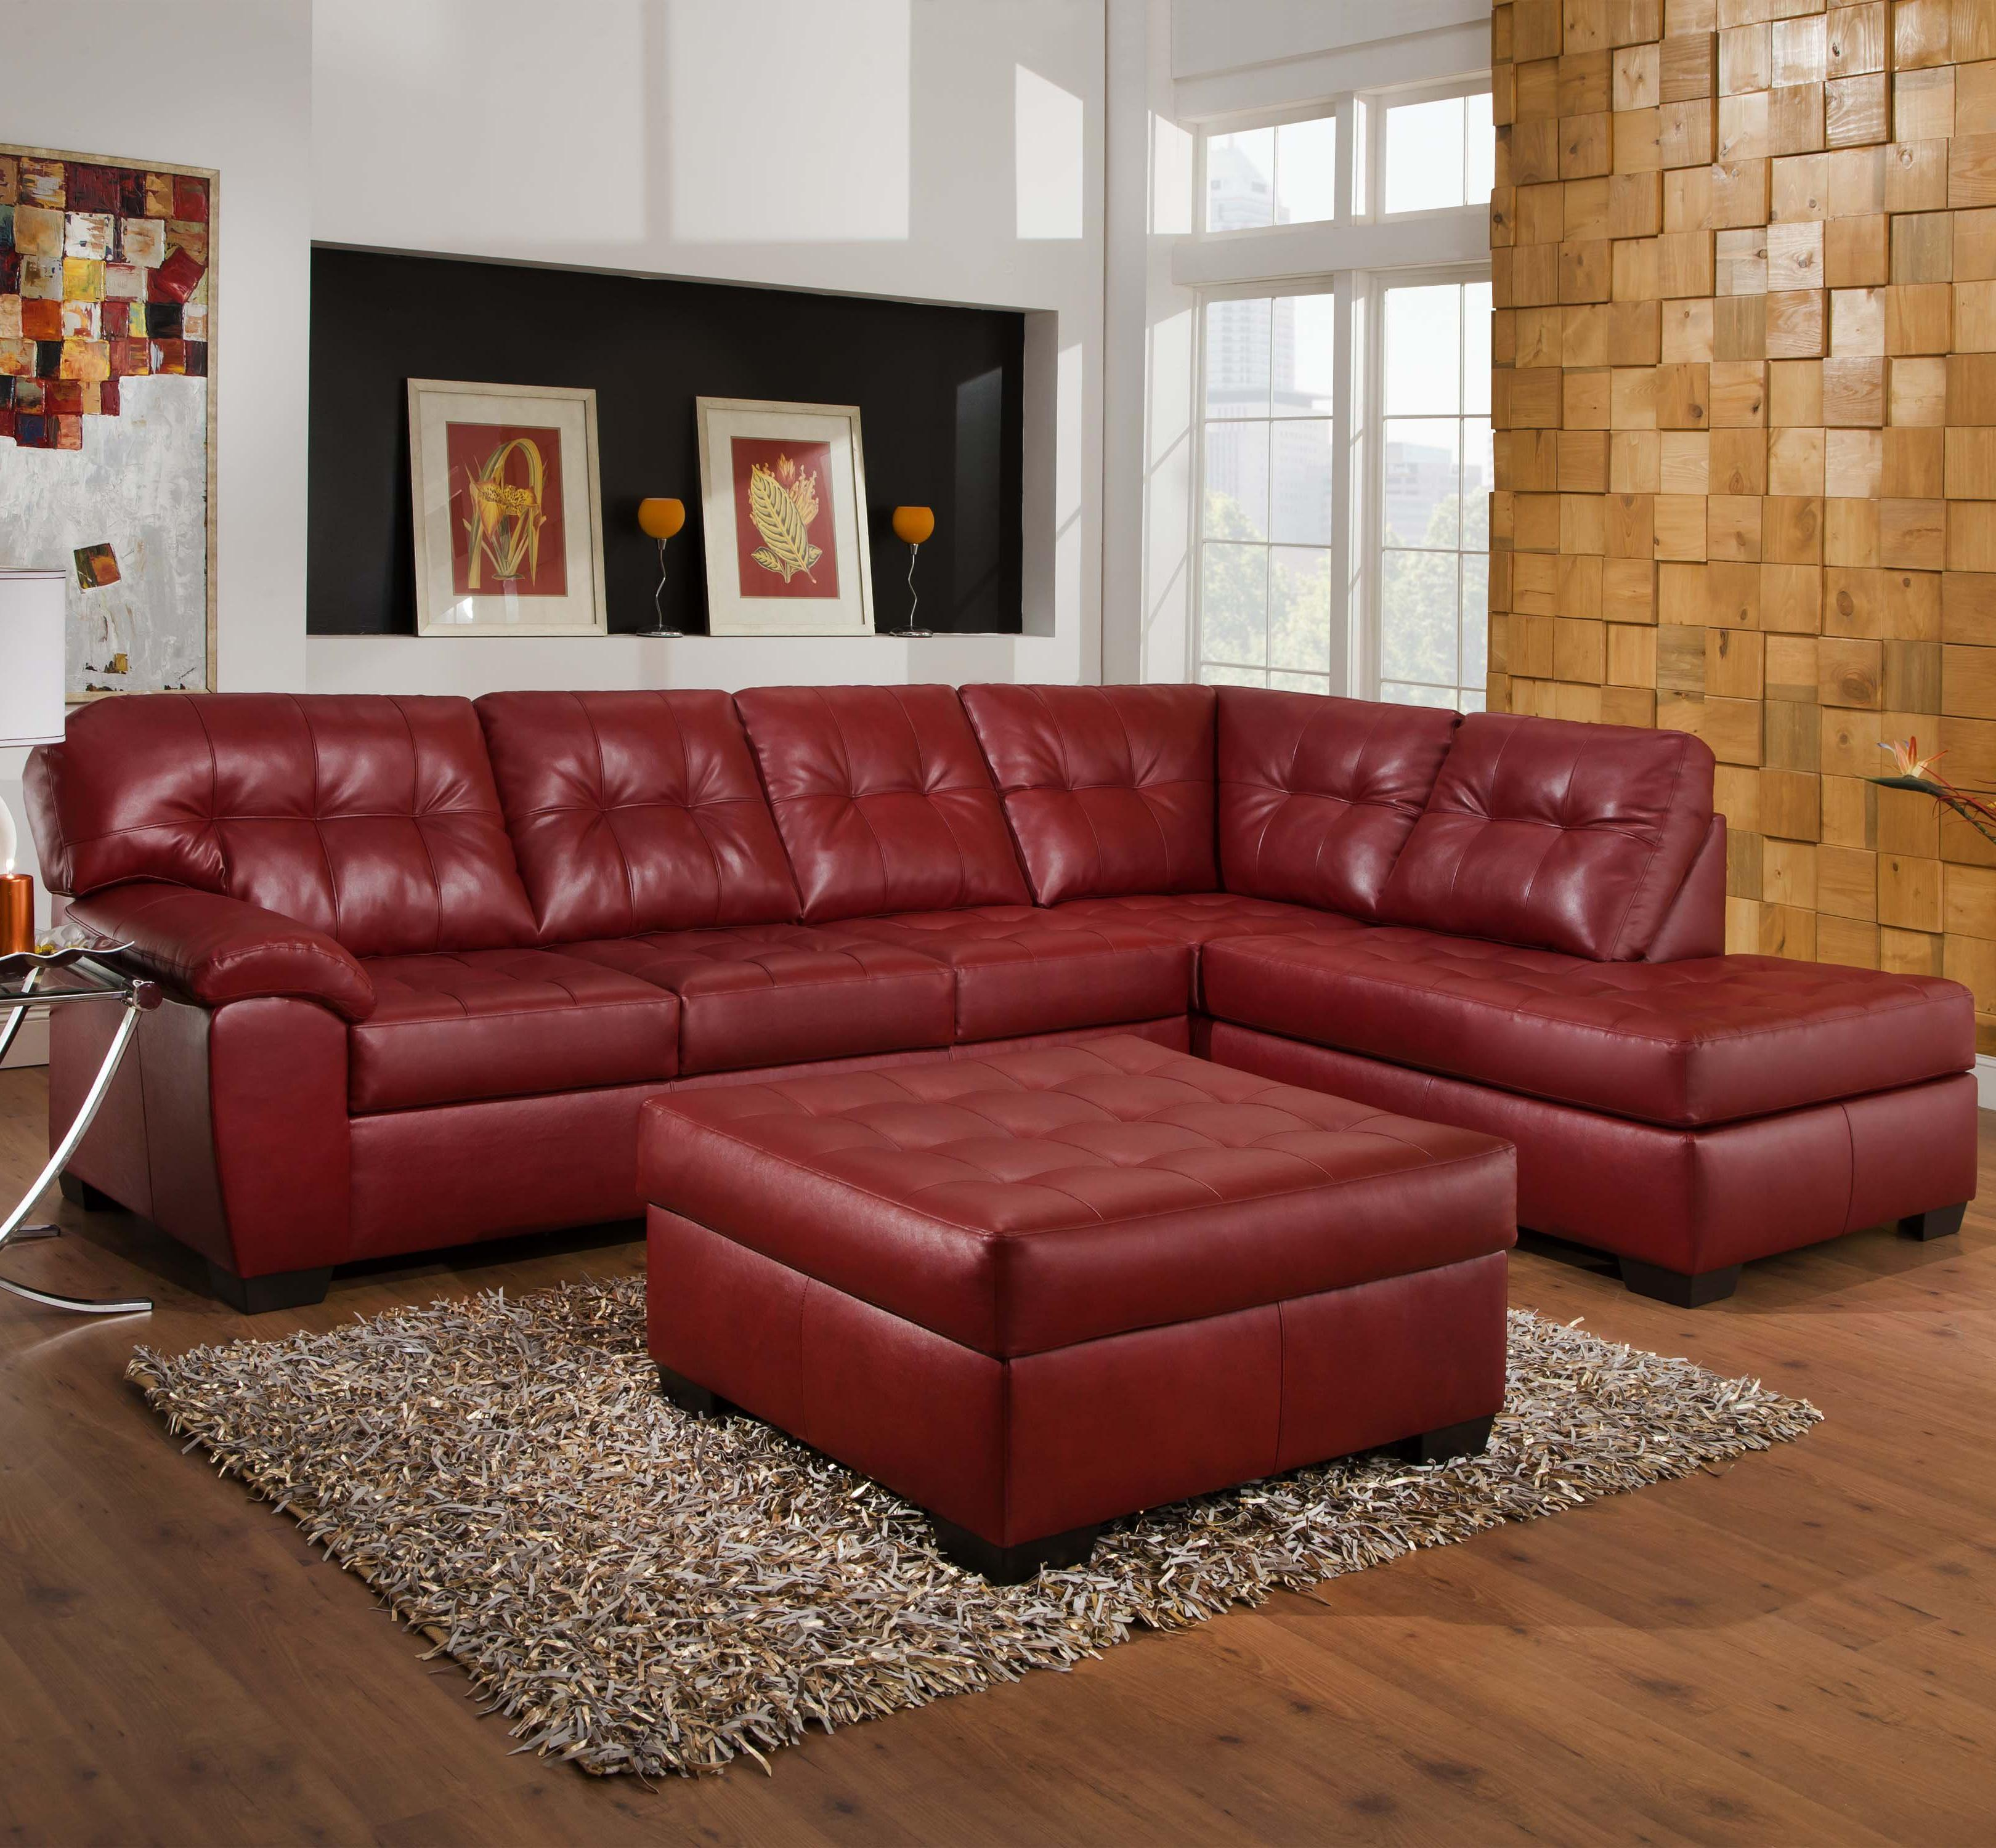 Perfect Simmons Upholstery 9569 2 Piece Sectional   Item Number: 9569C Sofa+Chaise